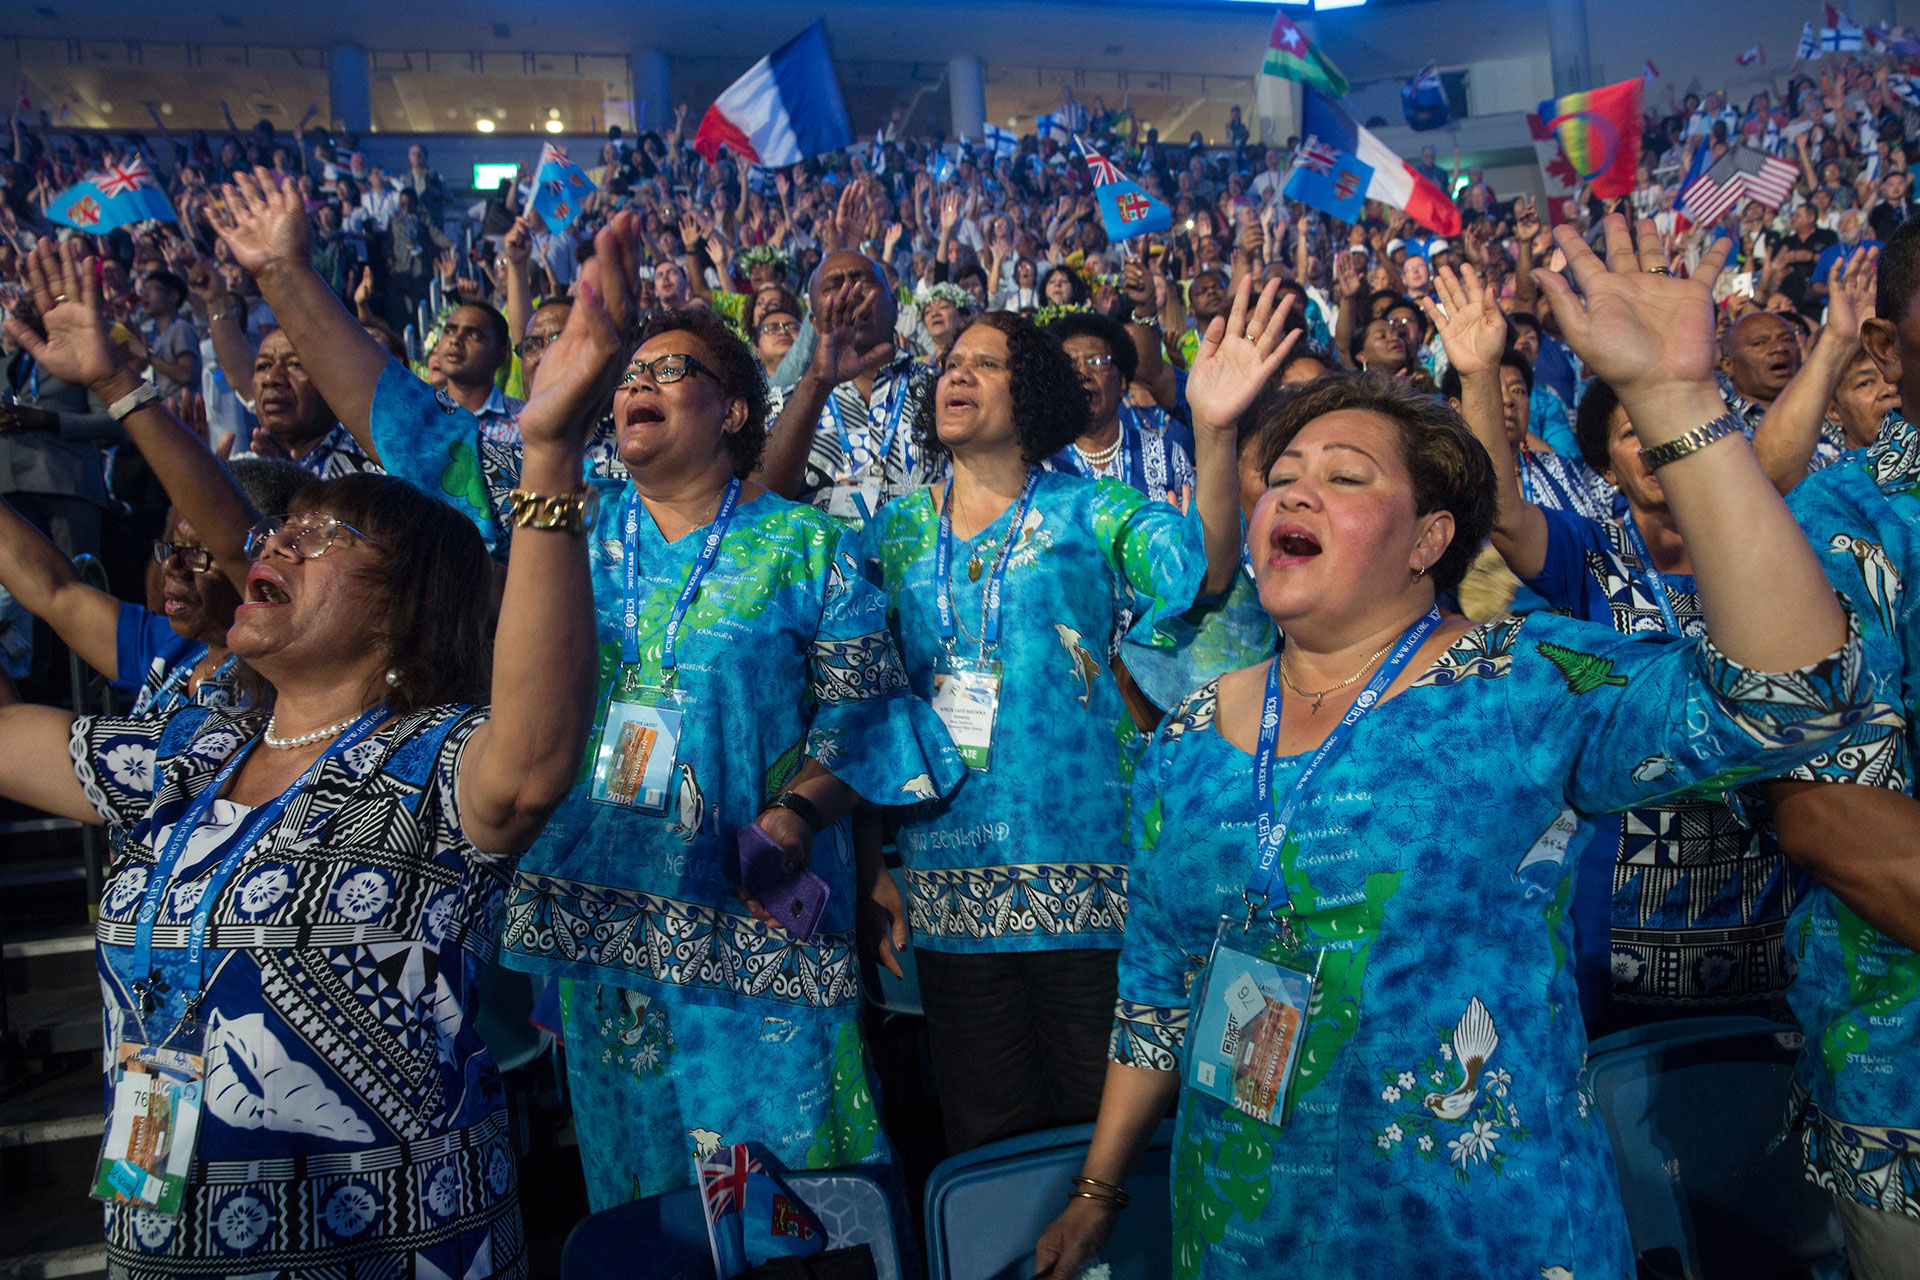 Thousands of Evangelical Christians from around the world attend the Parade of Nations and opening ceremonies for the 2018 Feast of Tabernacles at the Pais Arena in Jerusalem on September 24,2018. (Photo by Heidi Levine for The GroundTruth Project).